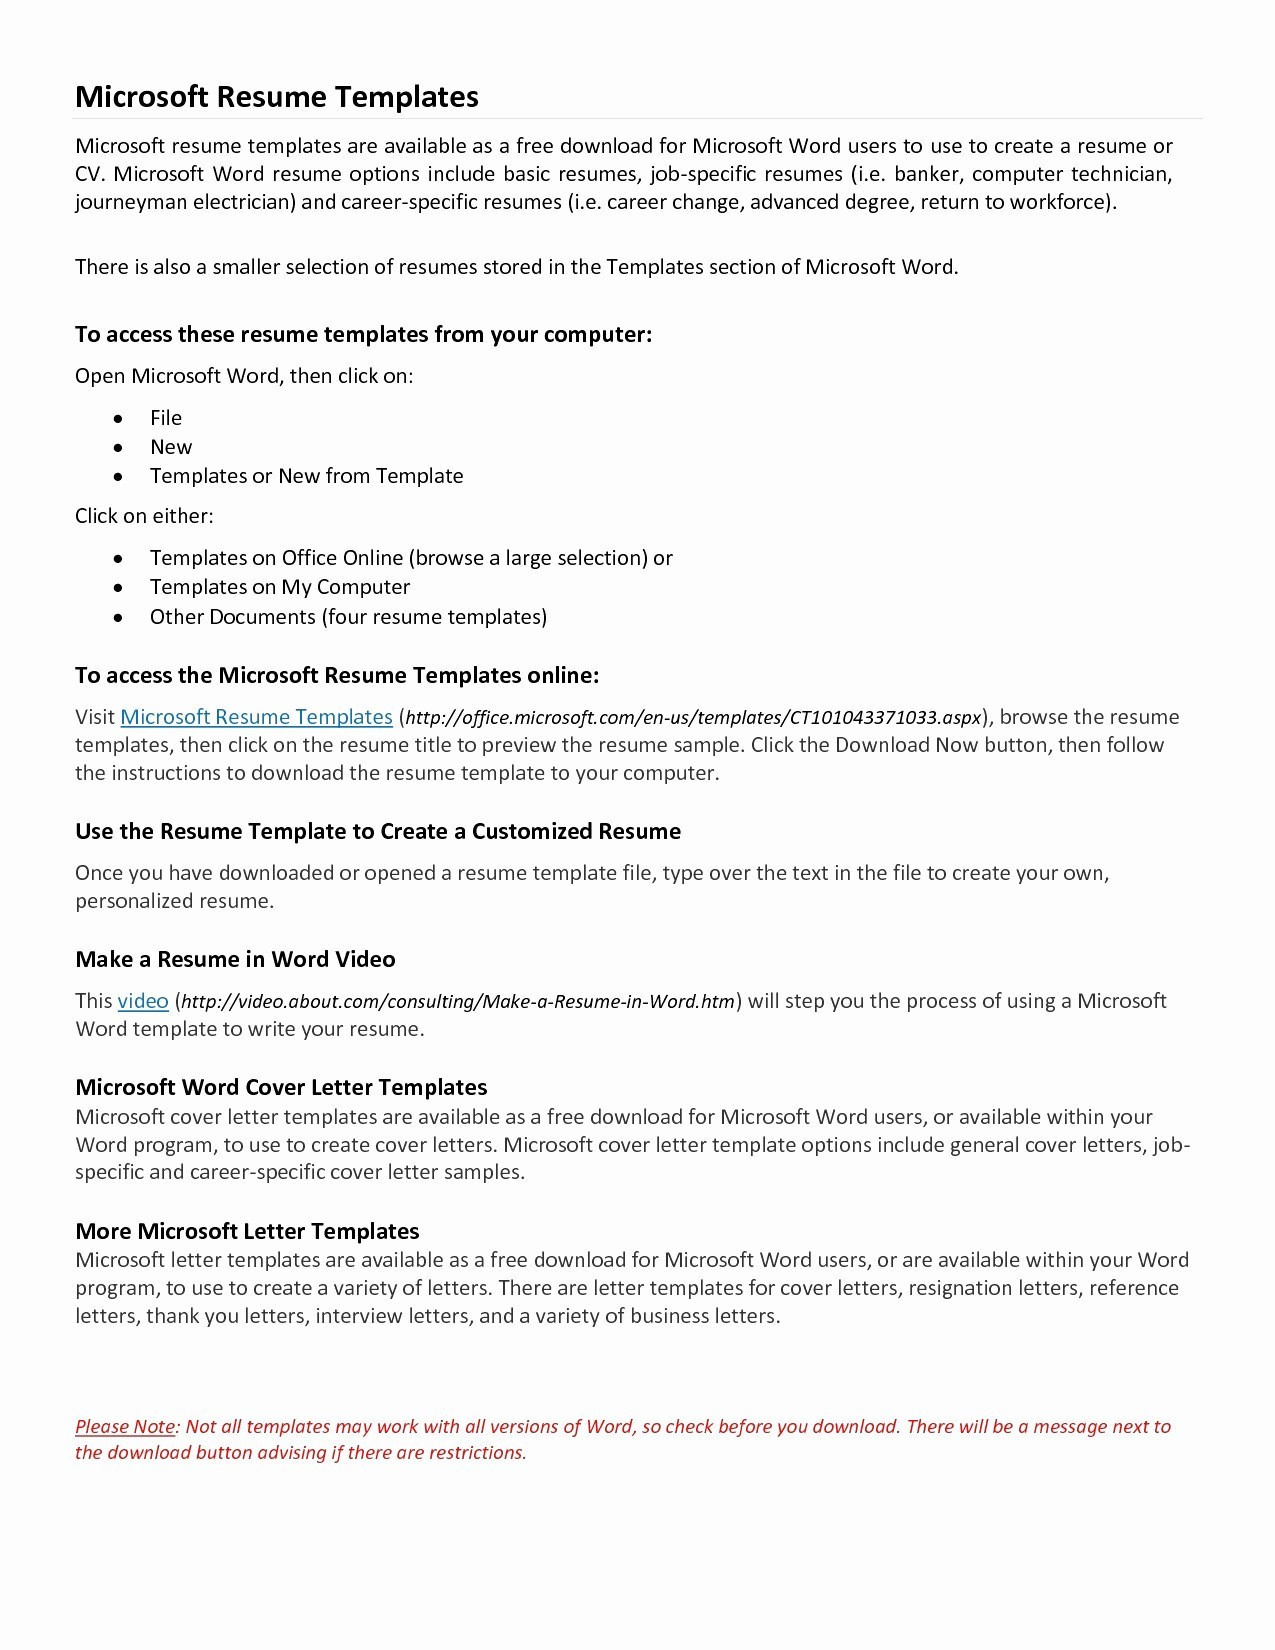 Microsoft Resume Wizard Free Download - Microsoft Letter Templates Free Save Microsoft Word Resignation